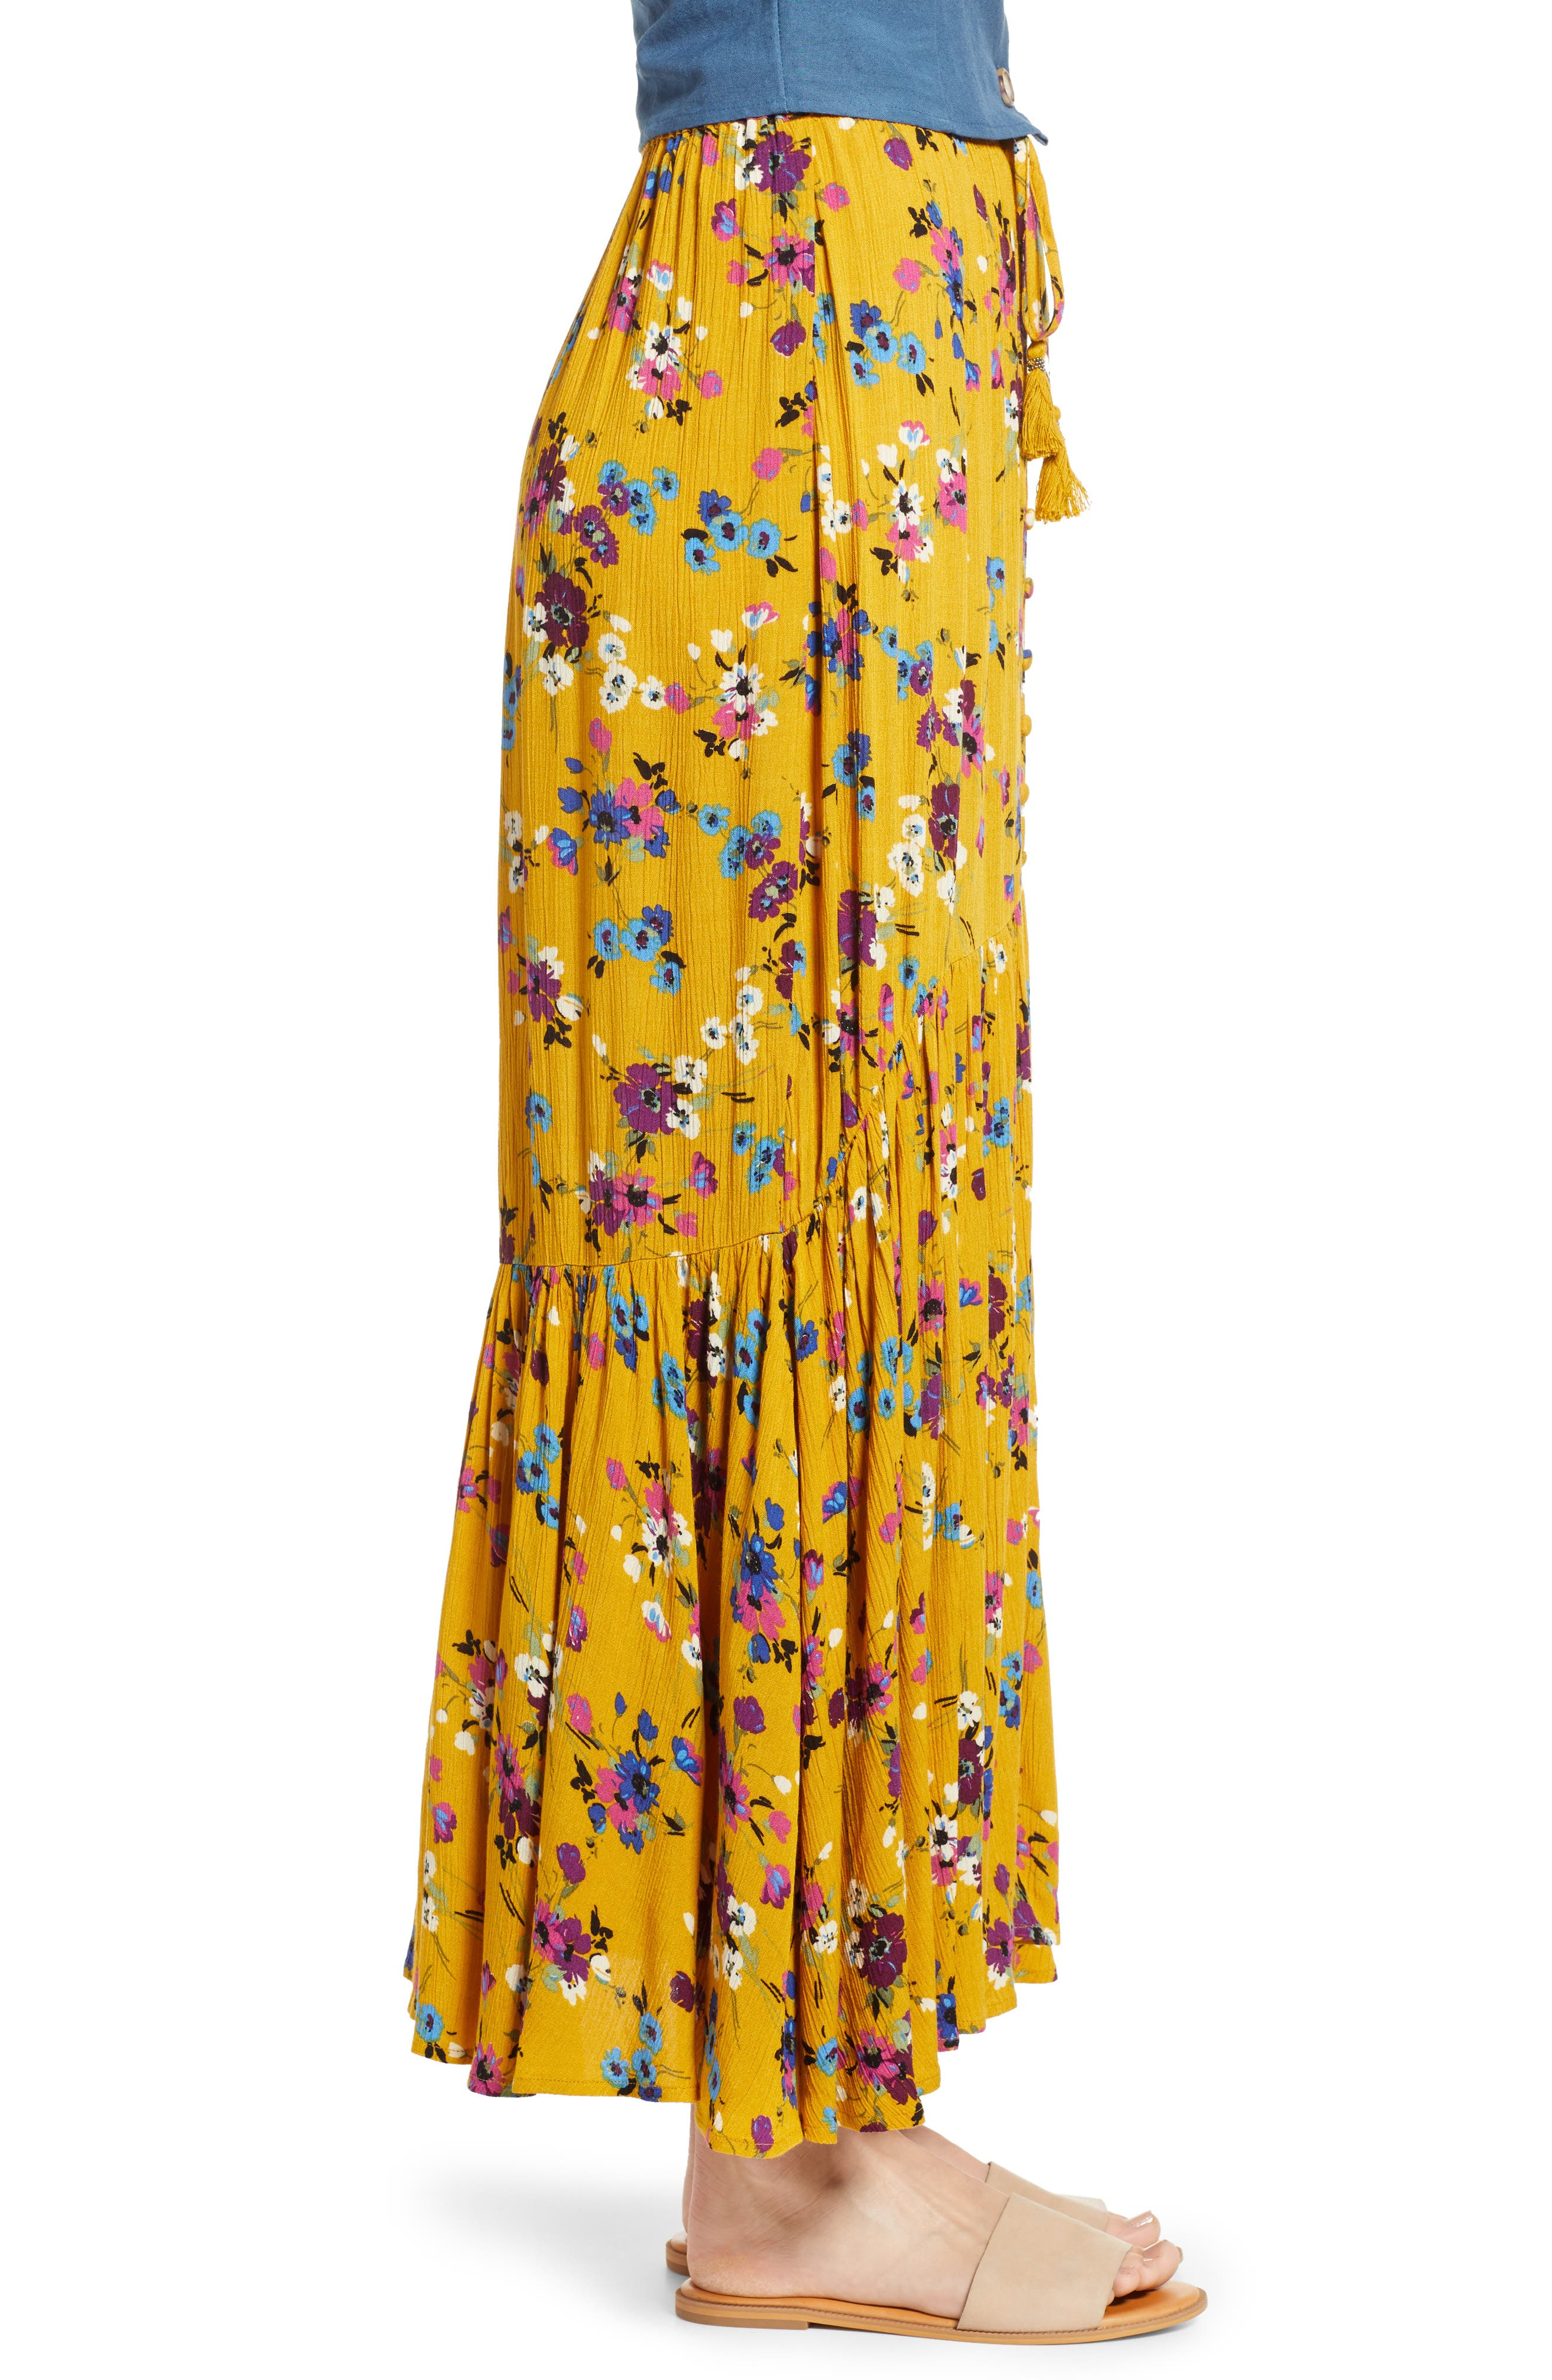 BAND OF GYPSIES,                             Marseille Button Front Maxi Skirt,                             Alternate thumbnail 3, color,                             700